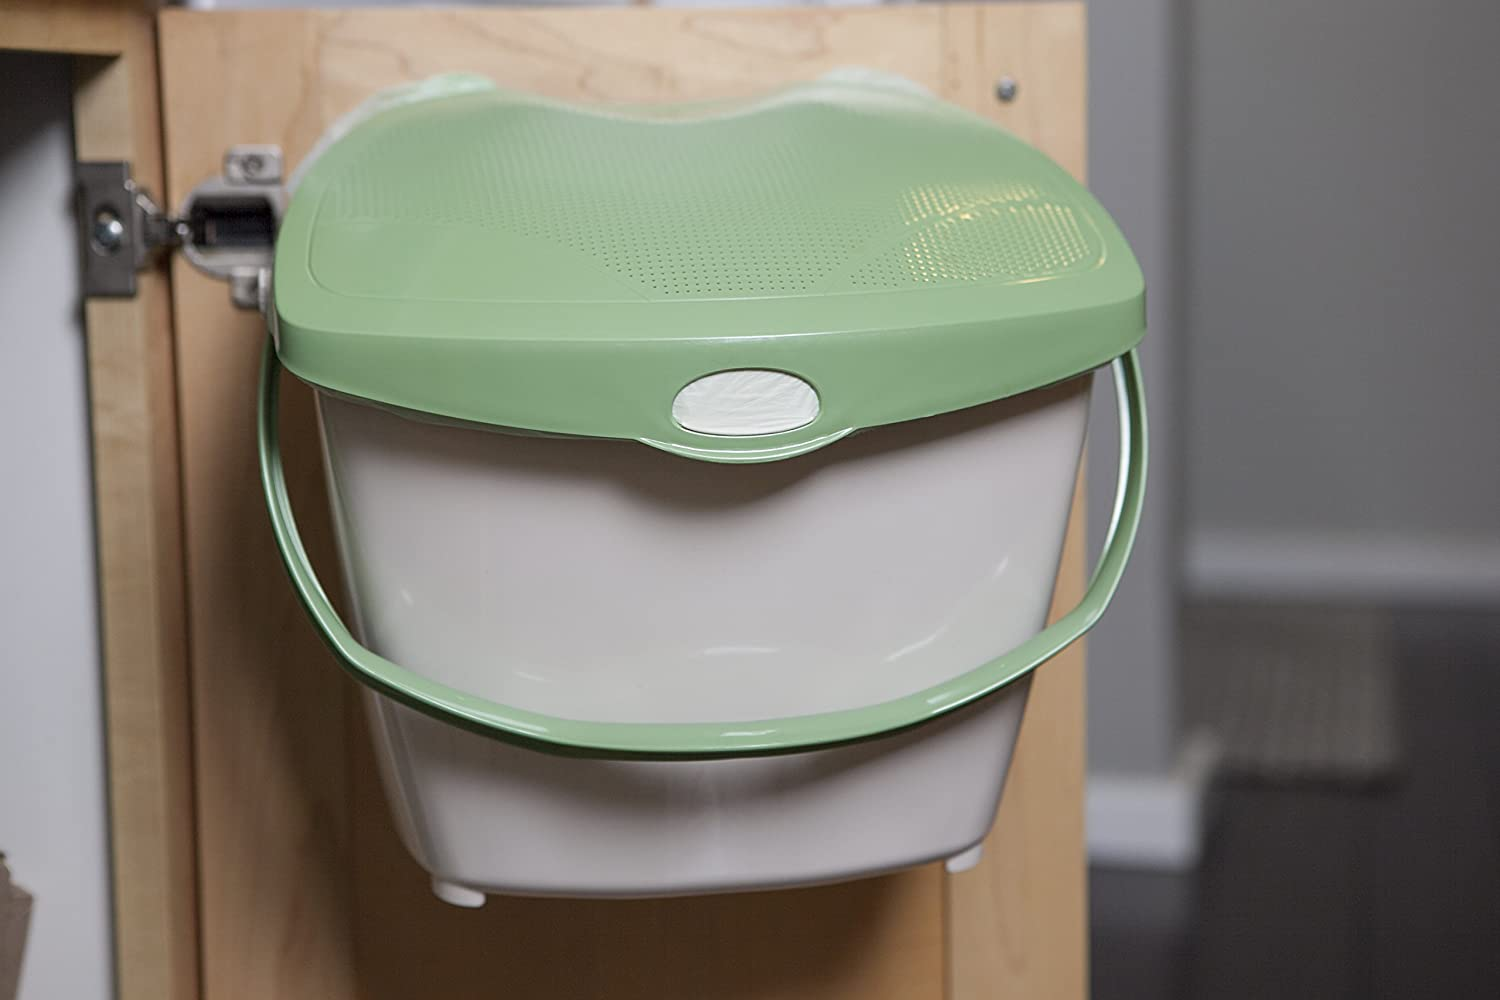 Mountable Kitchen Compost Bin by Zero Waste Together - 2 Gal, Under Sink, Countertop, Aerated/Odor Free, Dishwasher Safe, Bags Ok, Made in Canada